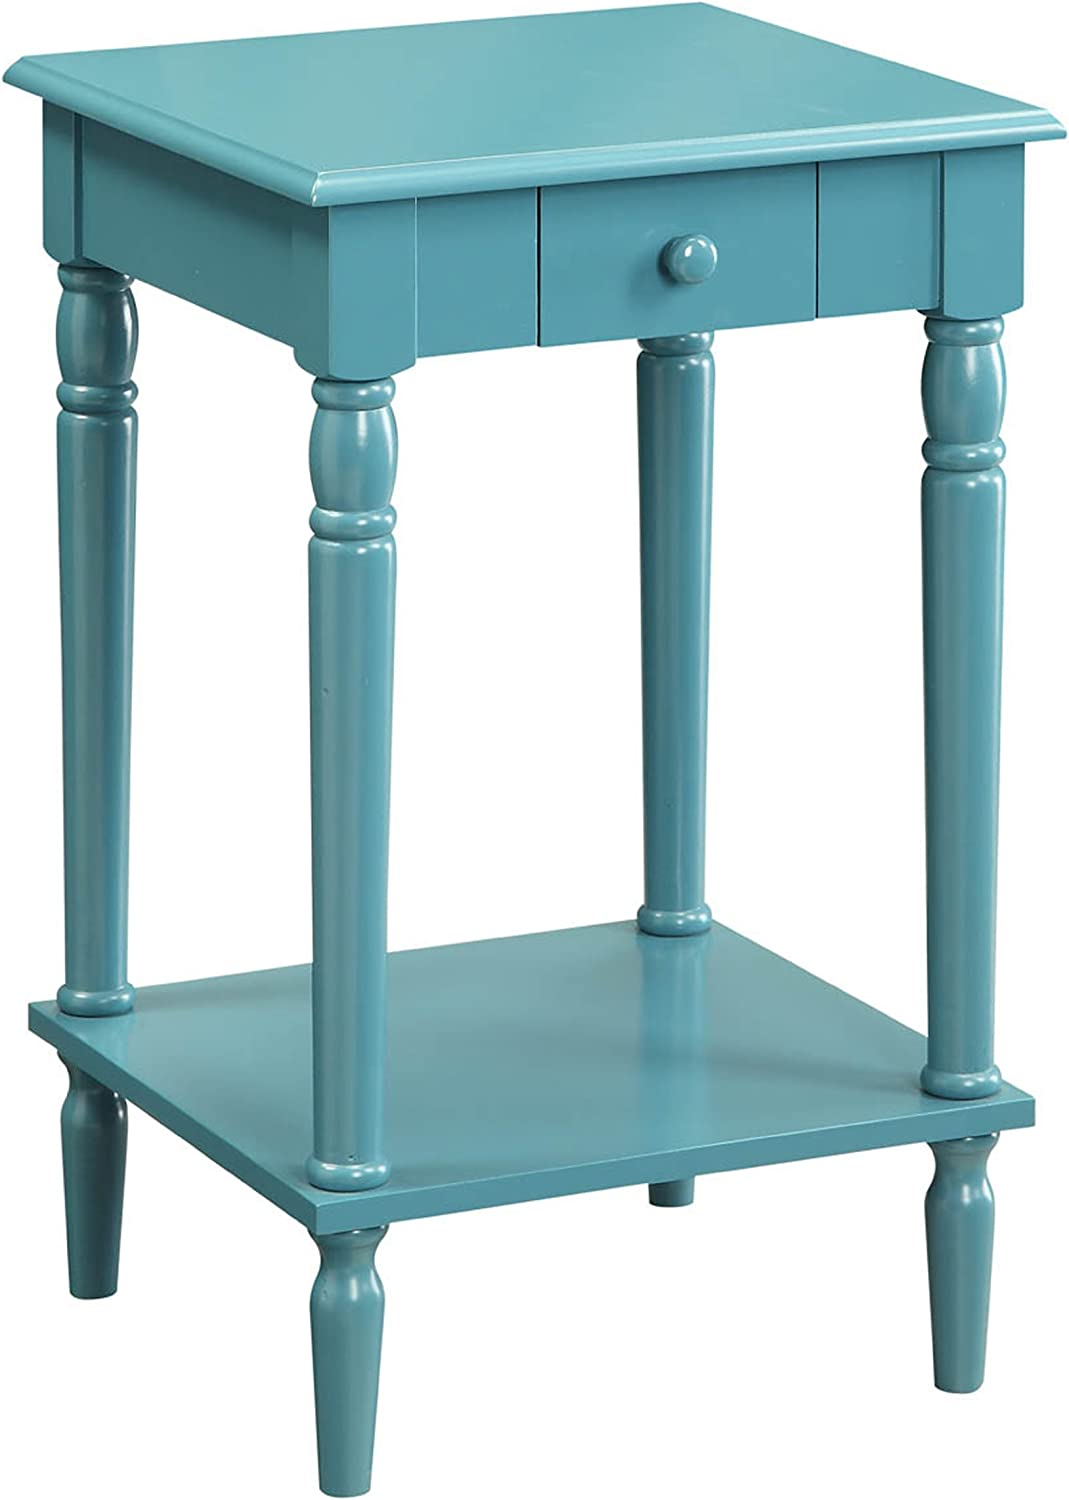 Convenience Concepts 6053185 French Country End Table, bluee